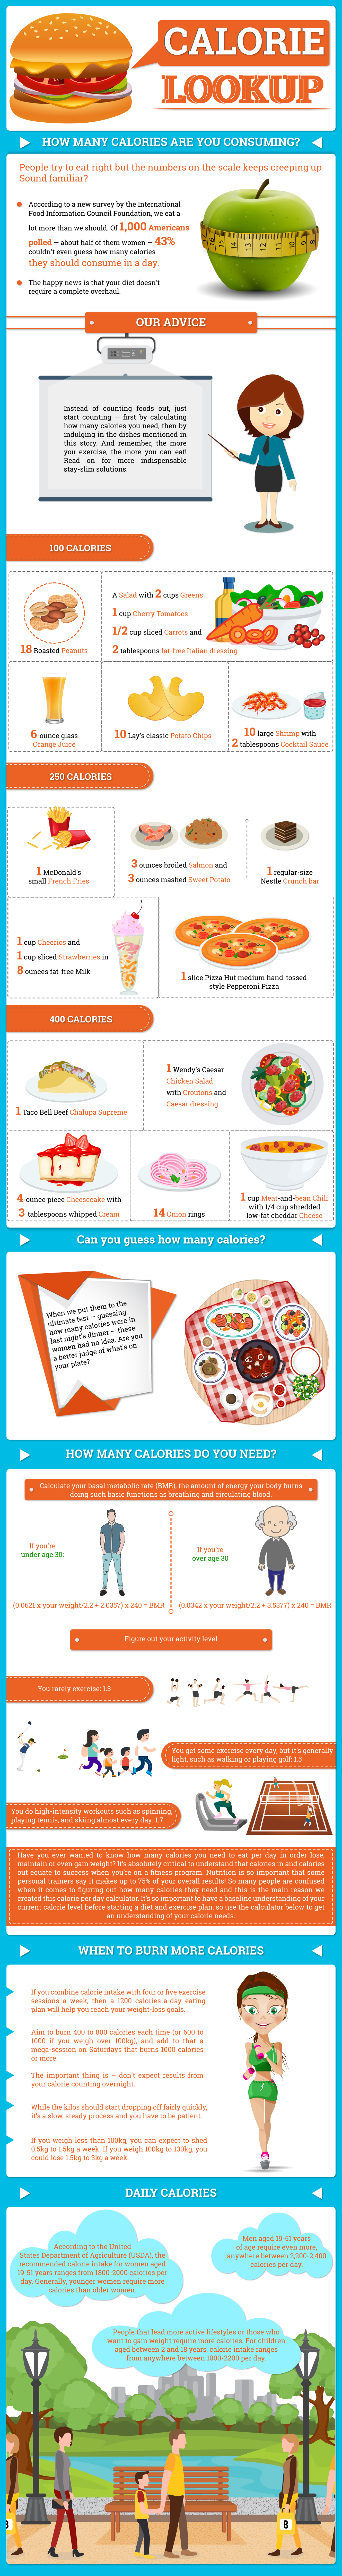 How Many Calories Are You Consuming?